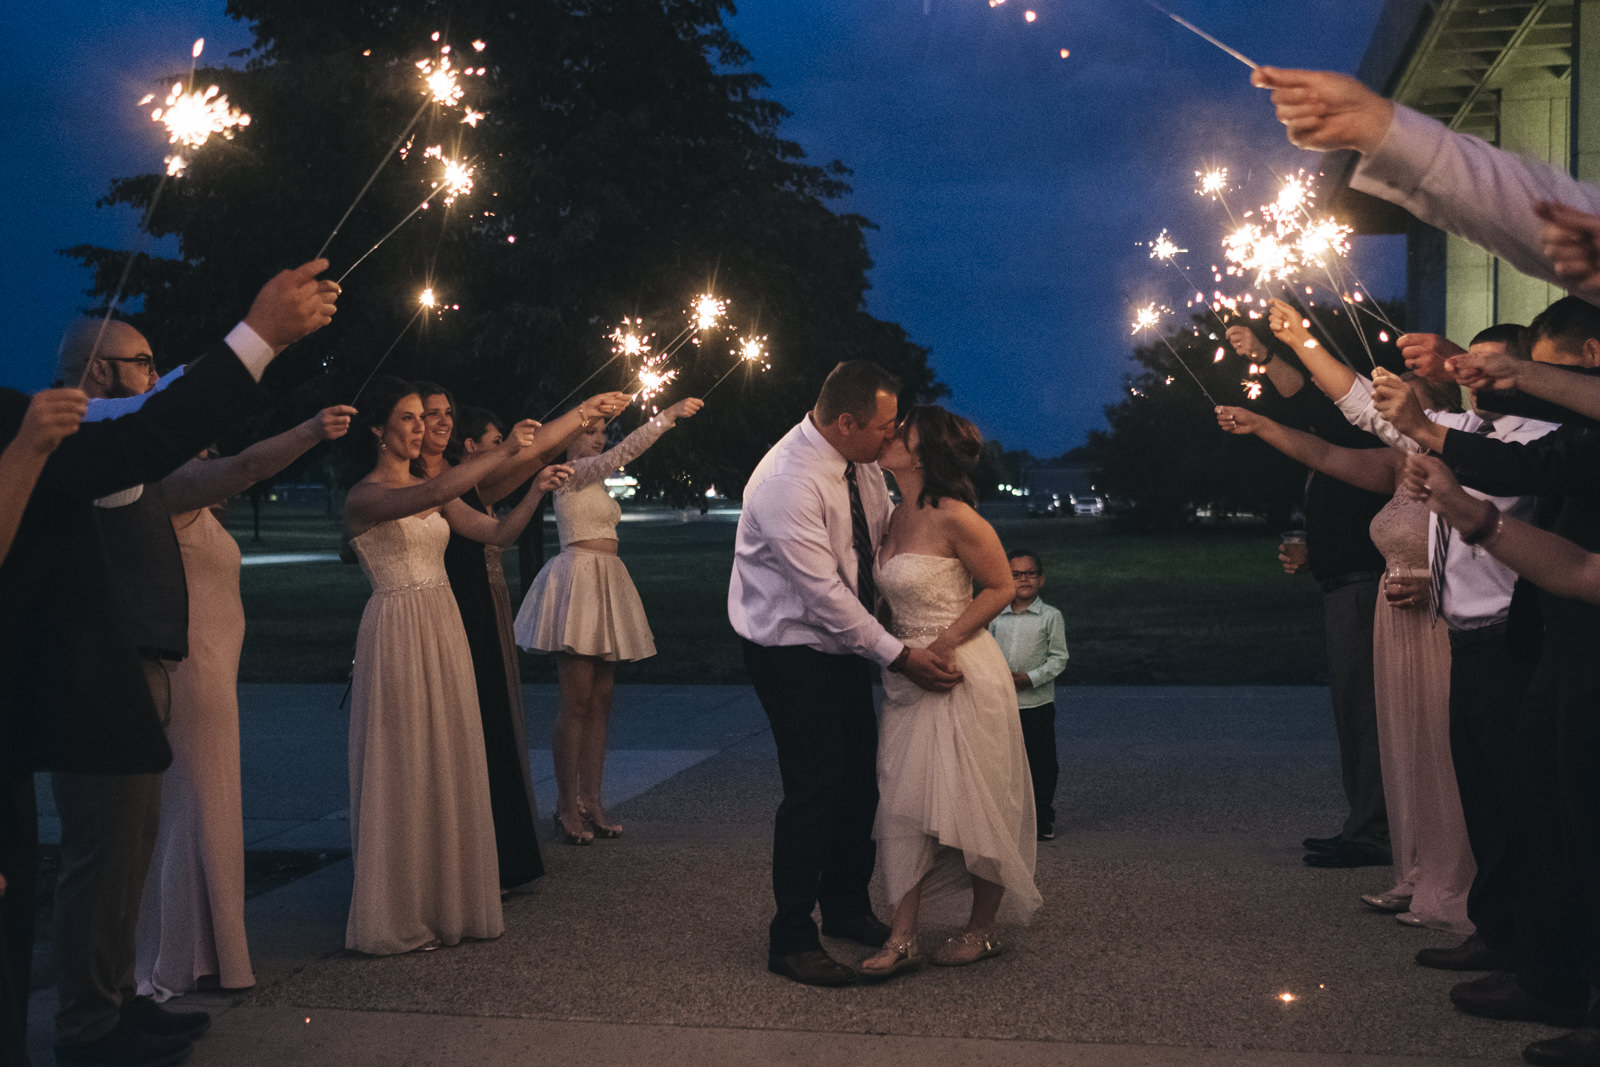 The bride and groom kiss during their sparkler exit in Toledo, Ohio.